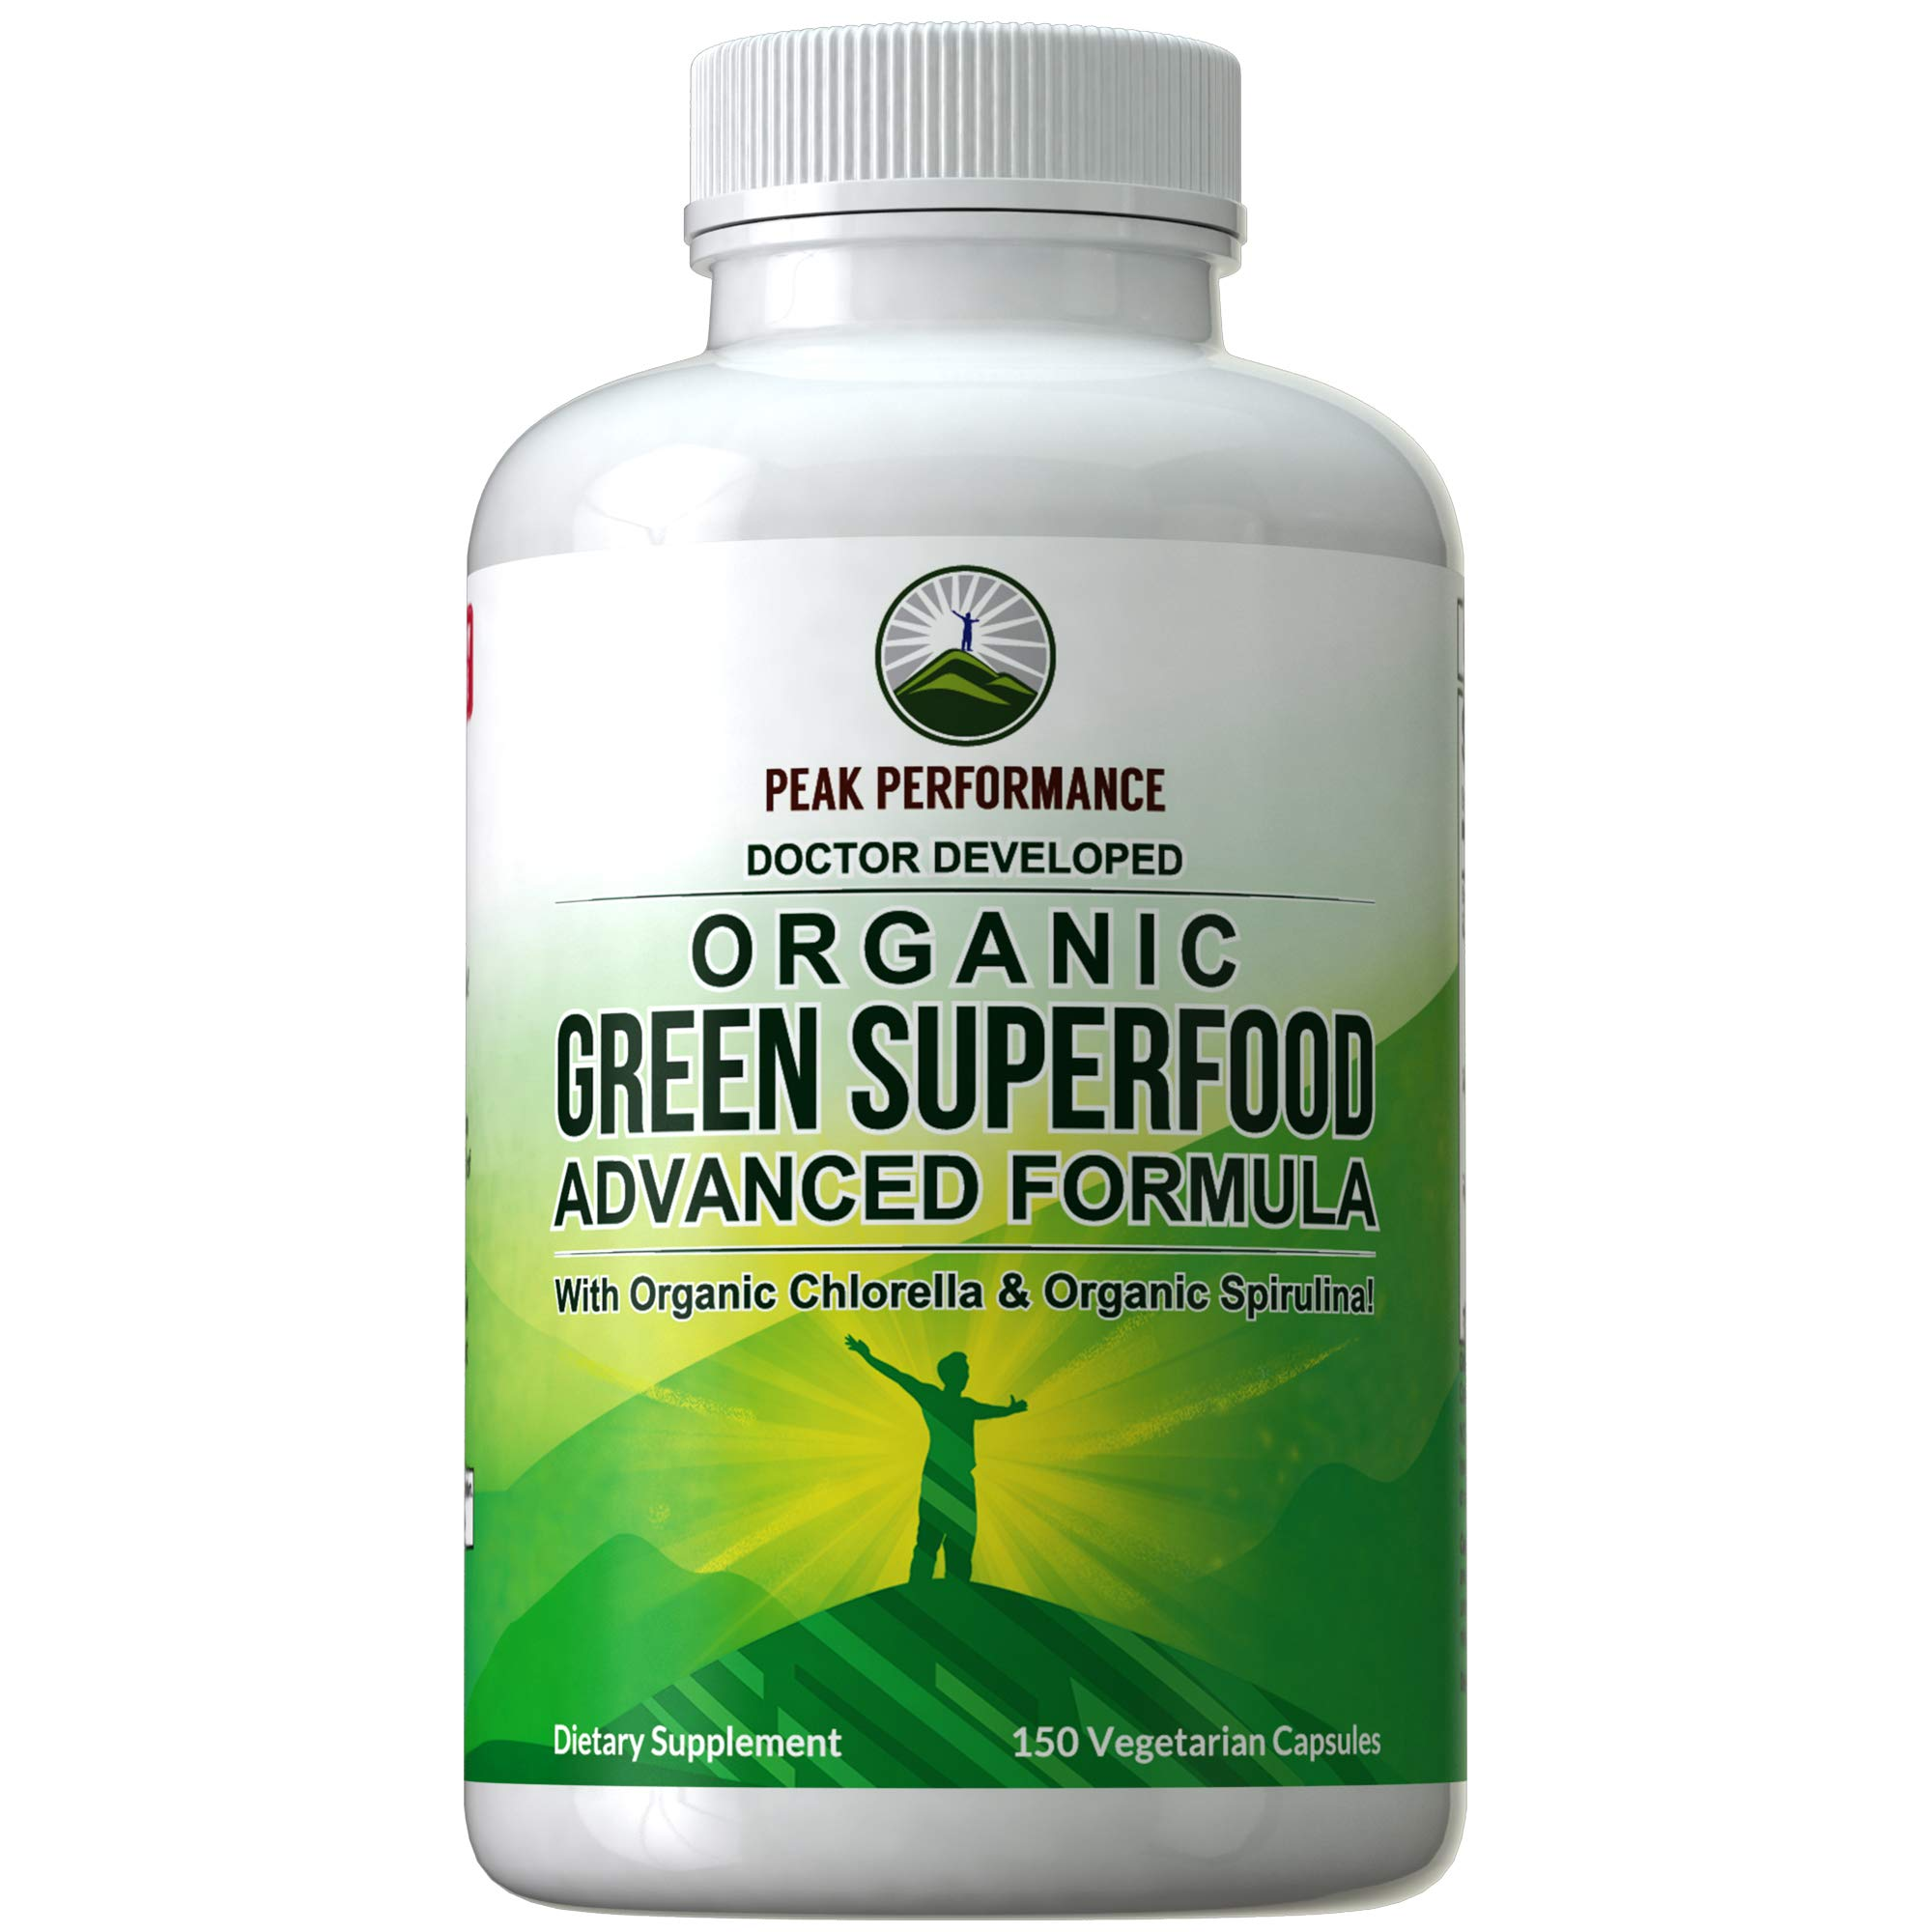 Organic Super Greens 150 Capsules - Green Juice Superfood Supplement with 25 All Natural Amazing Ingredients. Max Energy and Detox Super Food Pills with Spirulina, Spinach, Kale, Turmeric, Probiotics